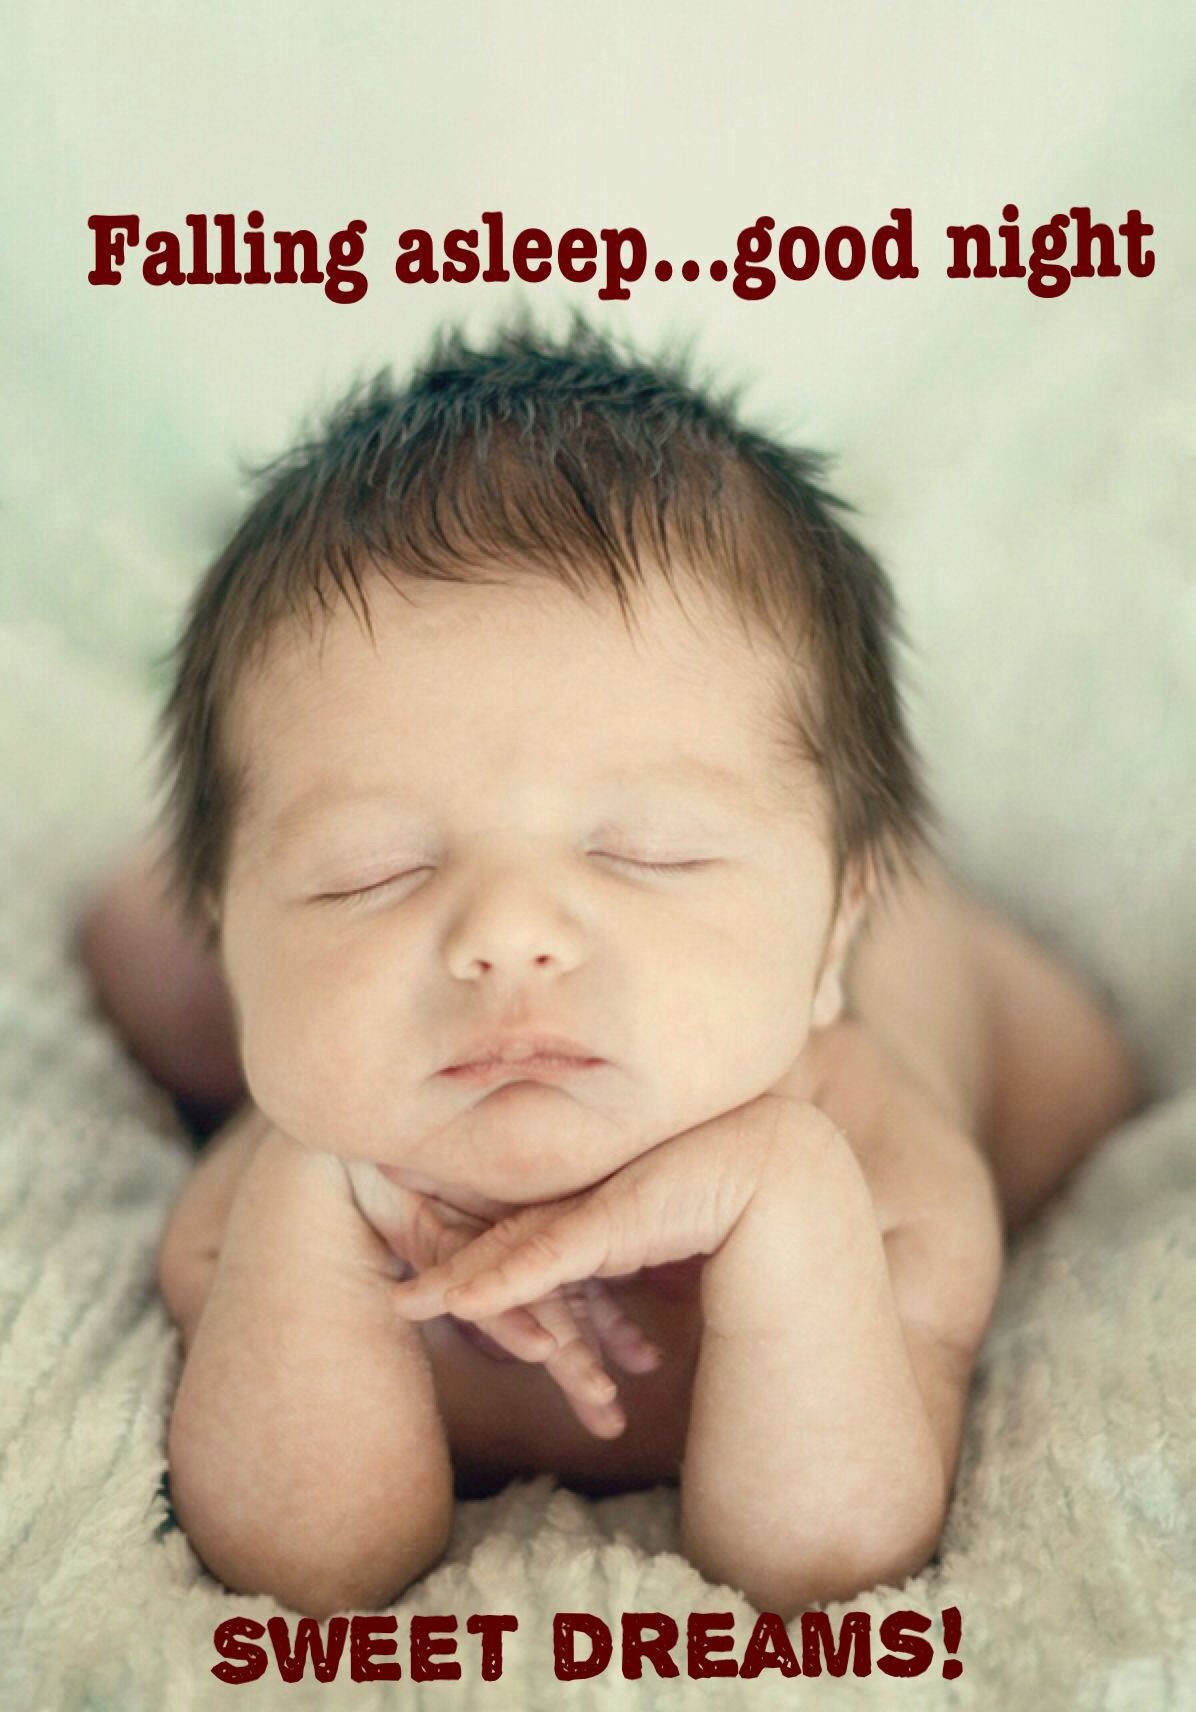 Cute Good Night Baby Wishing Everyone Sweet Dreams Humour